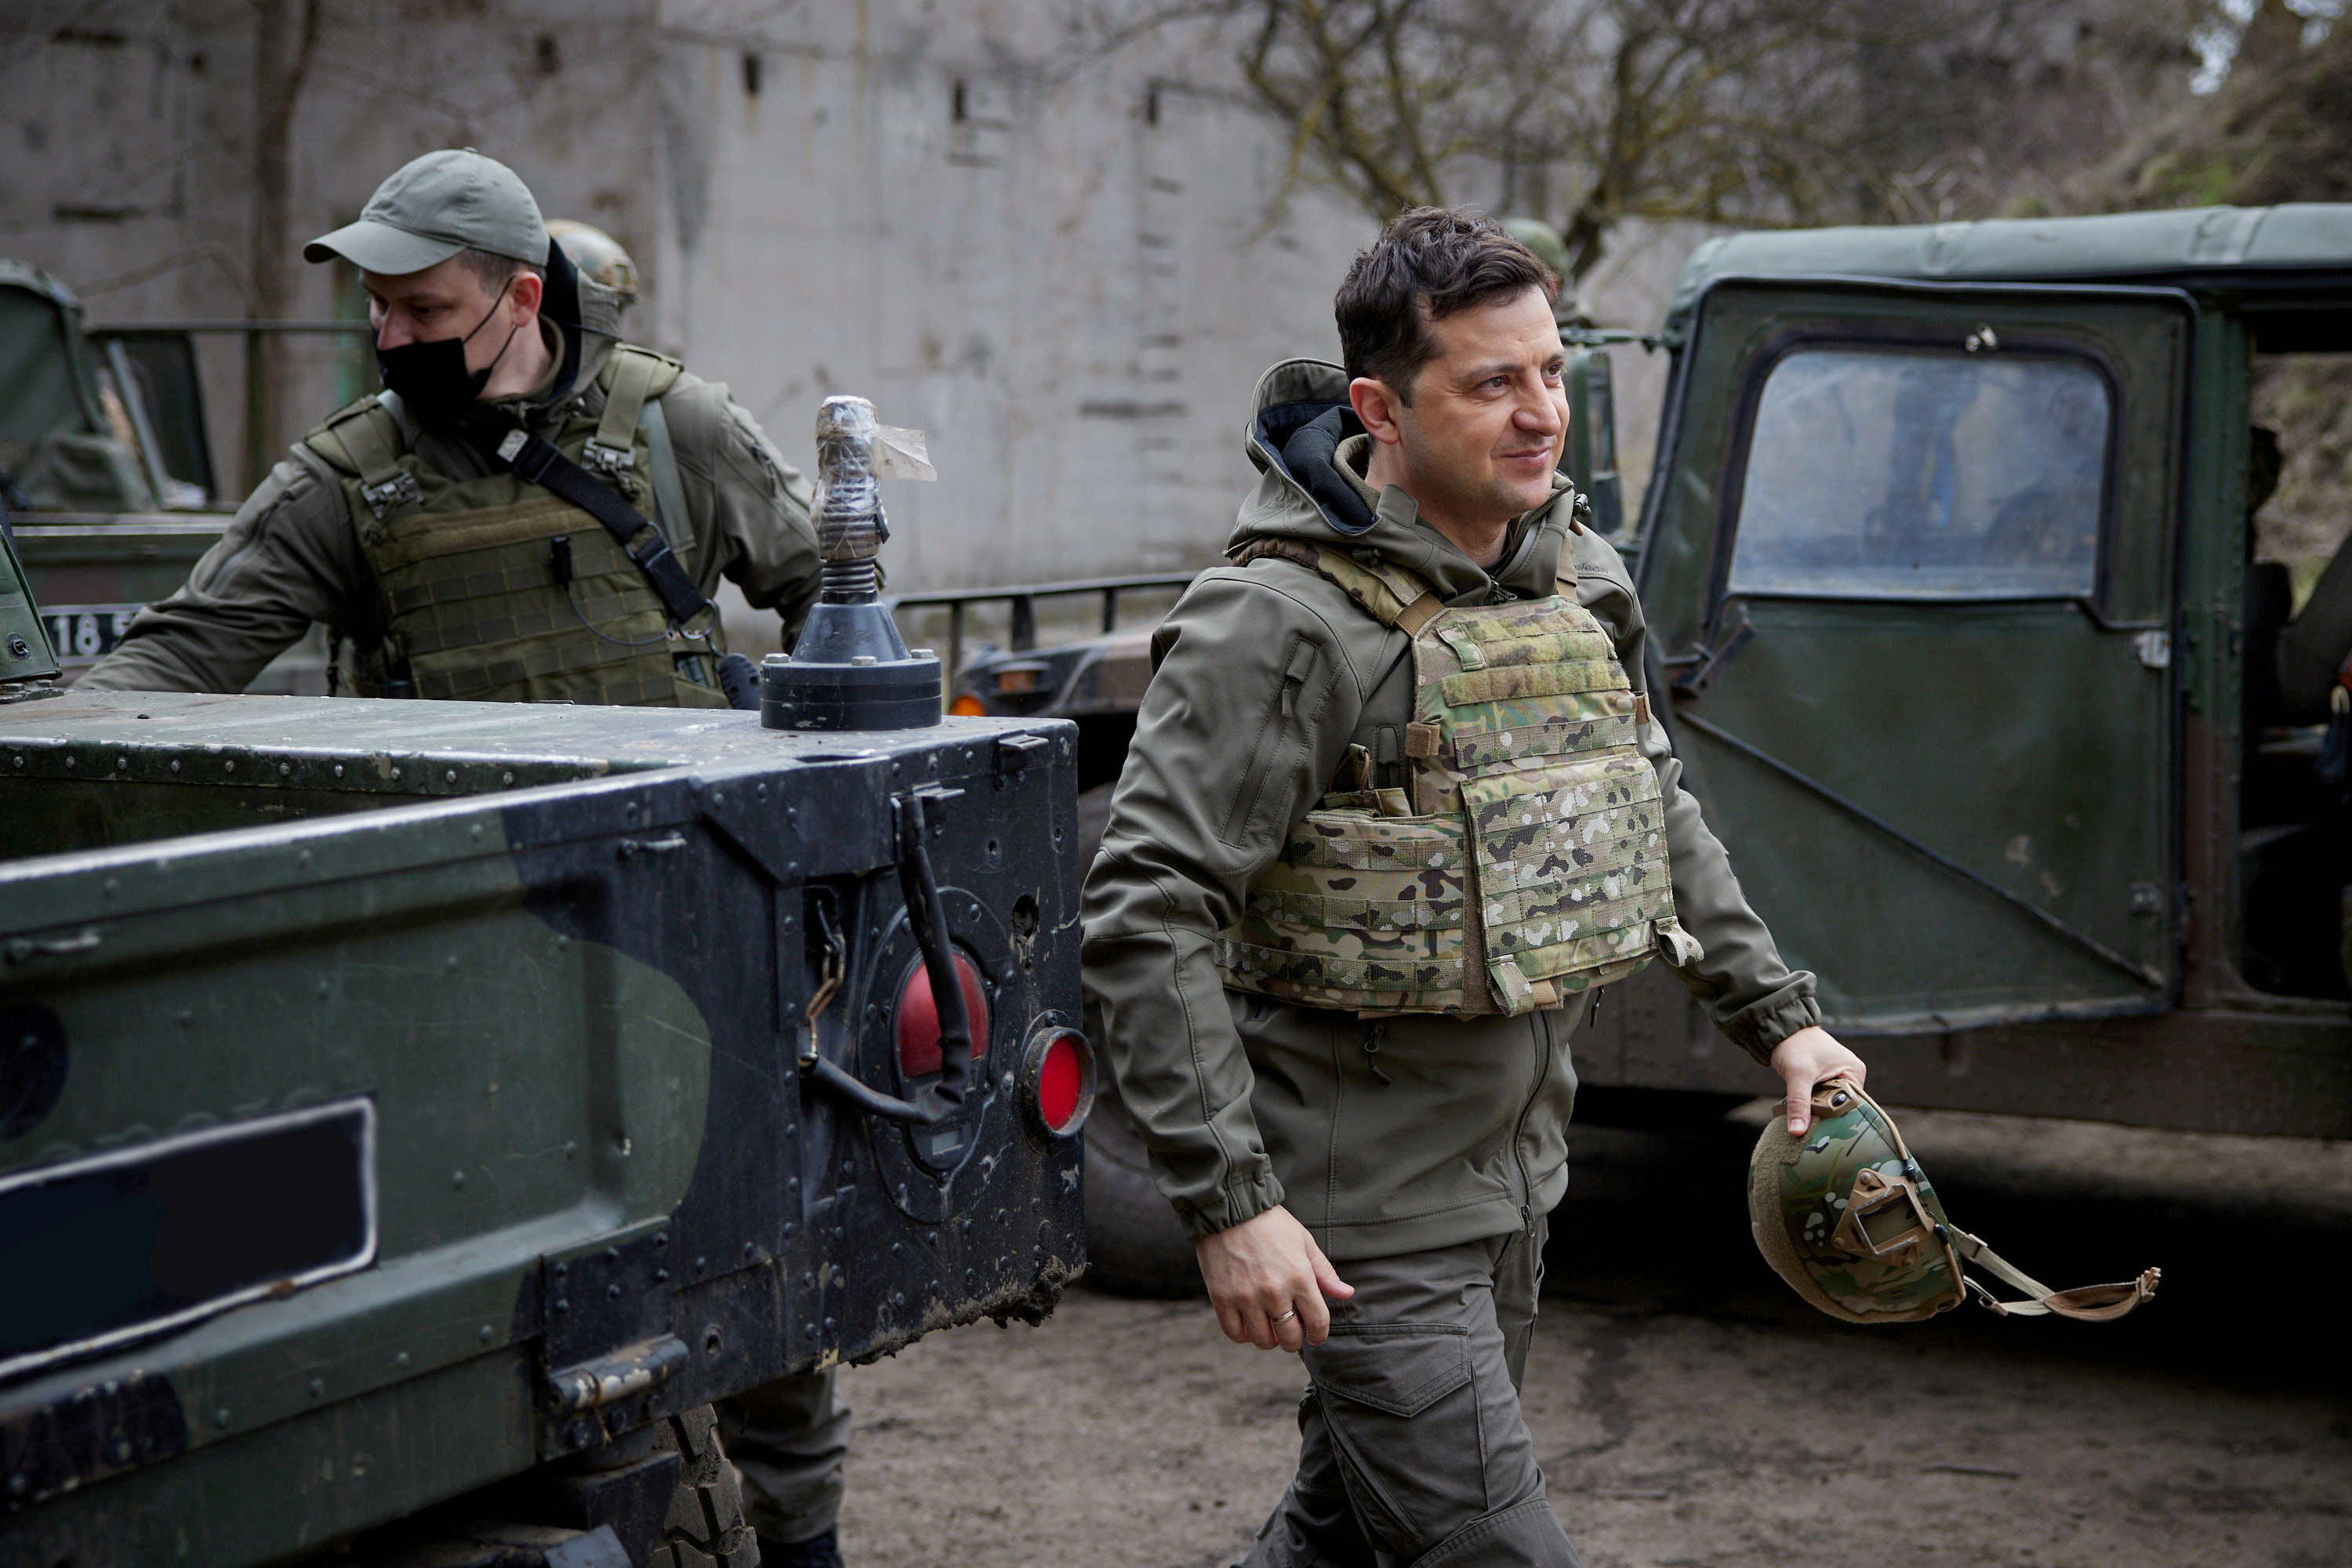 Ukraine's President Volodymyr Zelenskiy visits positions of armed forces near the frontline with Russian-backed separatists in Donbass region, Ukraine April 9, 2021. Ukrainian Presidential Press Service/Handout via REUTERS